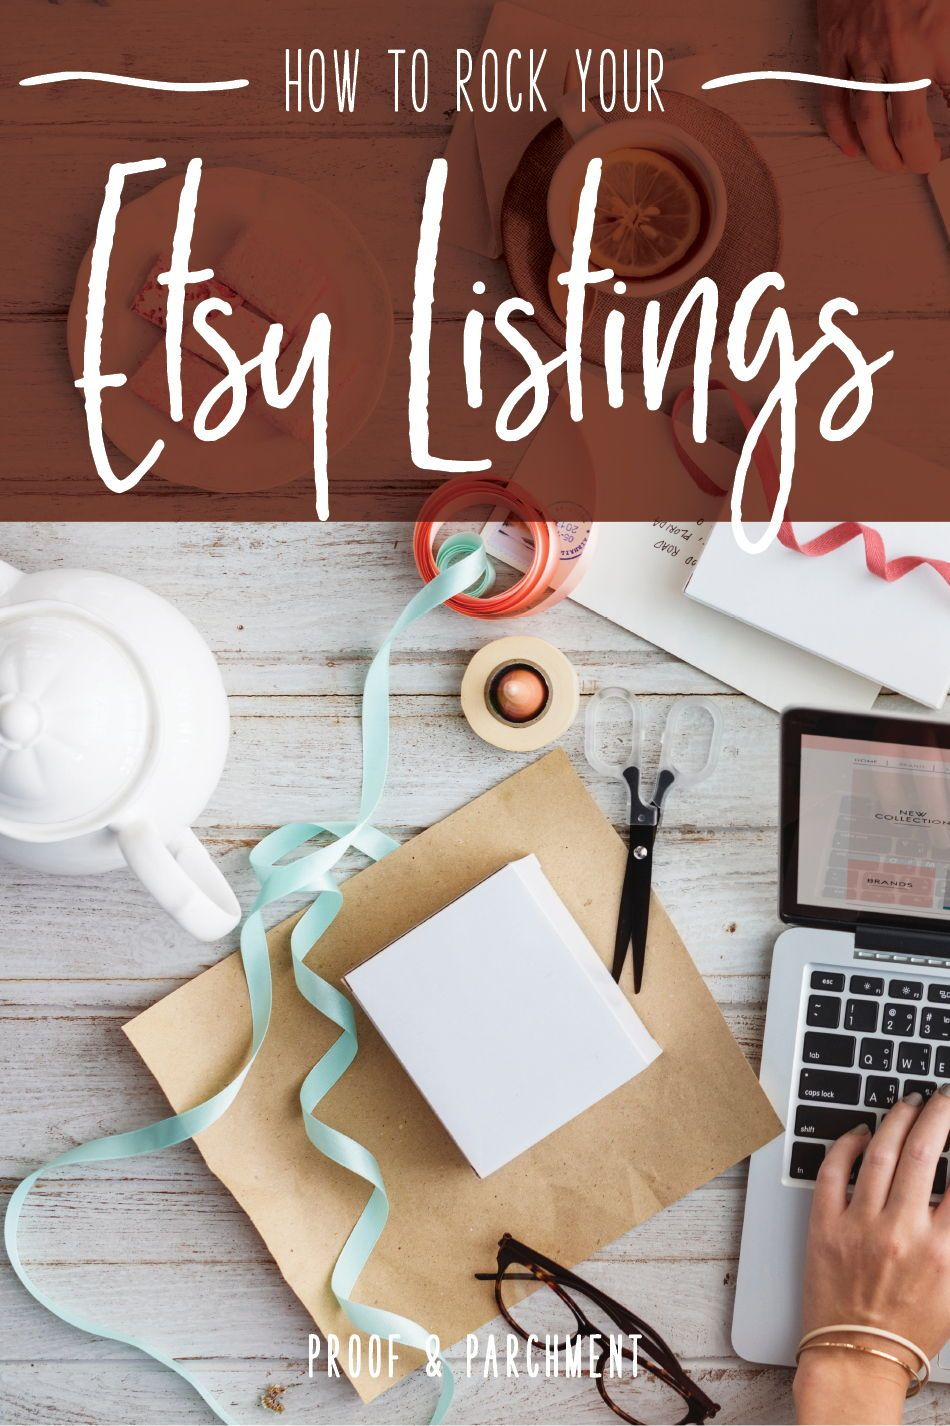 How to Rock Your Etsy Listing Etsy business, Etsy, Etsy seo